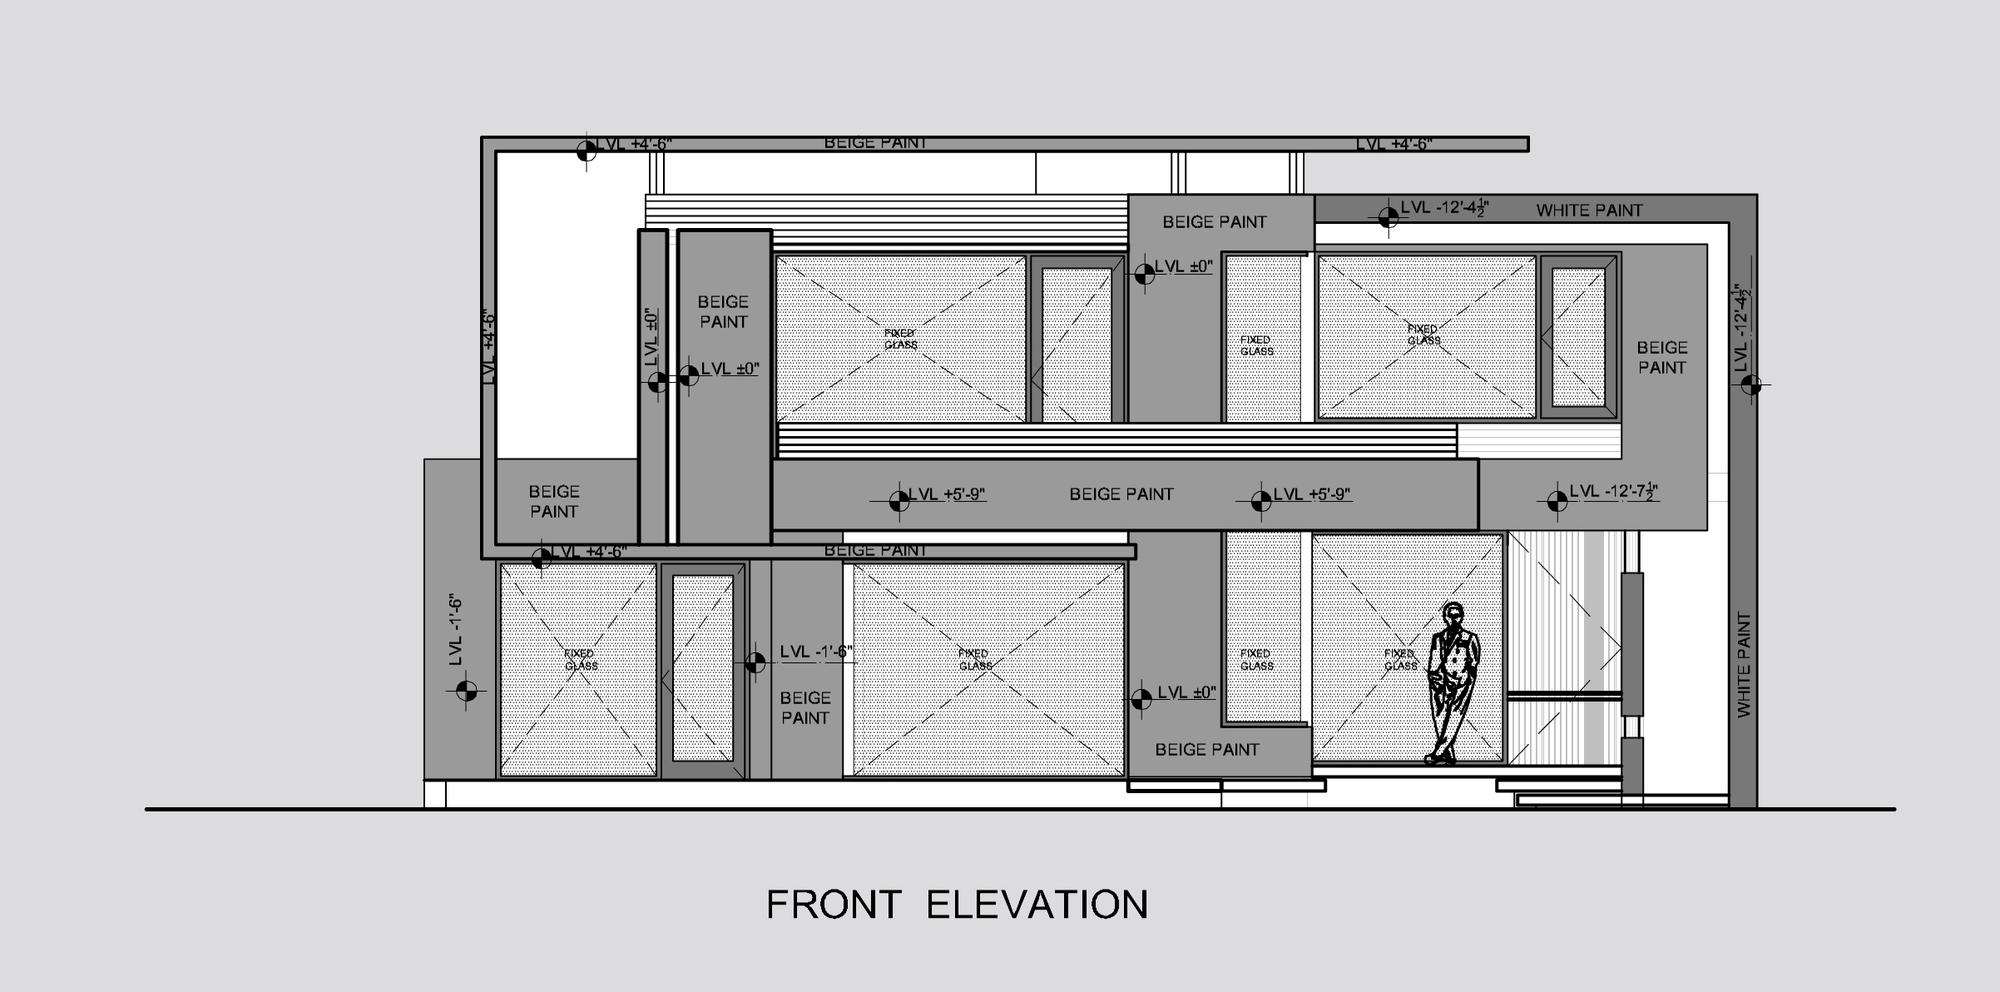 Building Front Elevation Drawings : Factory building front elevation joy studio design